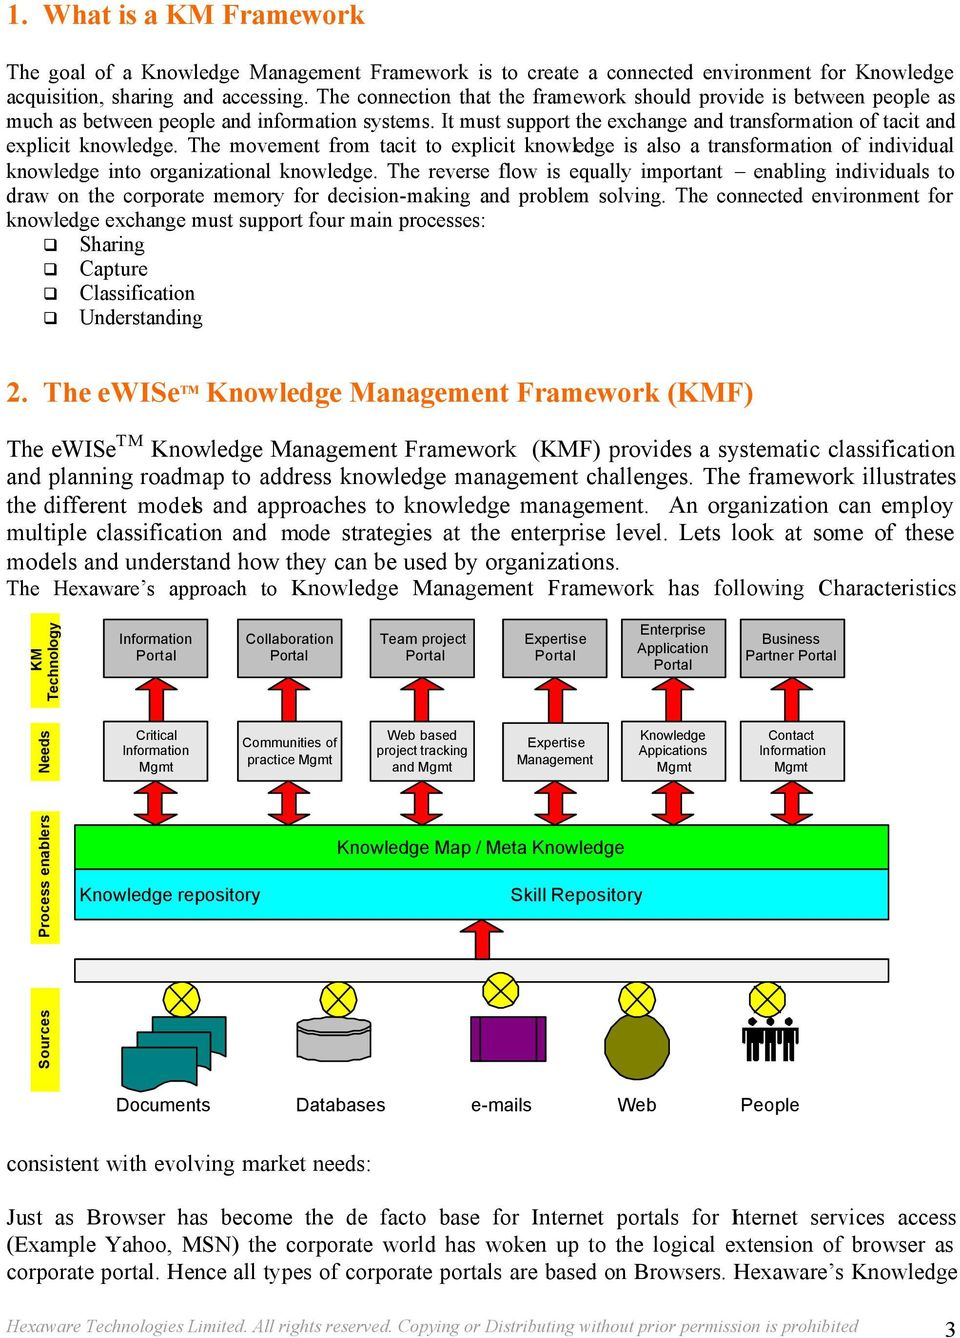 The movement from tacit to explicit knowledge is also a transformation of individual knowledge into organizational knowledge.